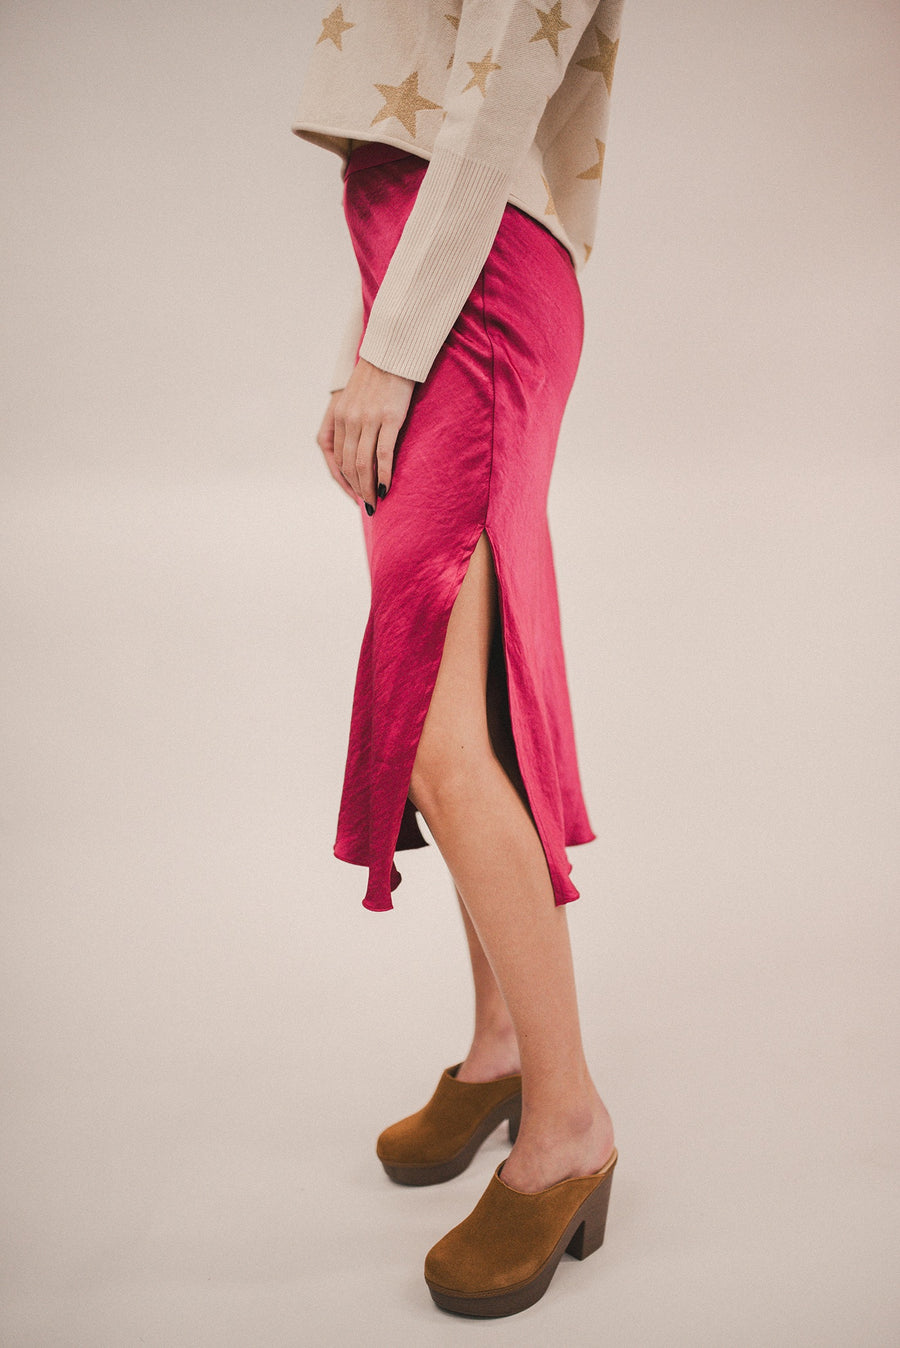 THE LOOK OF LUXE SATIN MIDI SLIP SKIRT